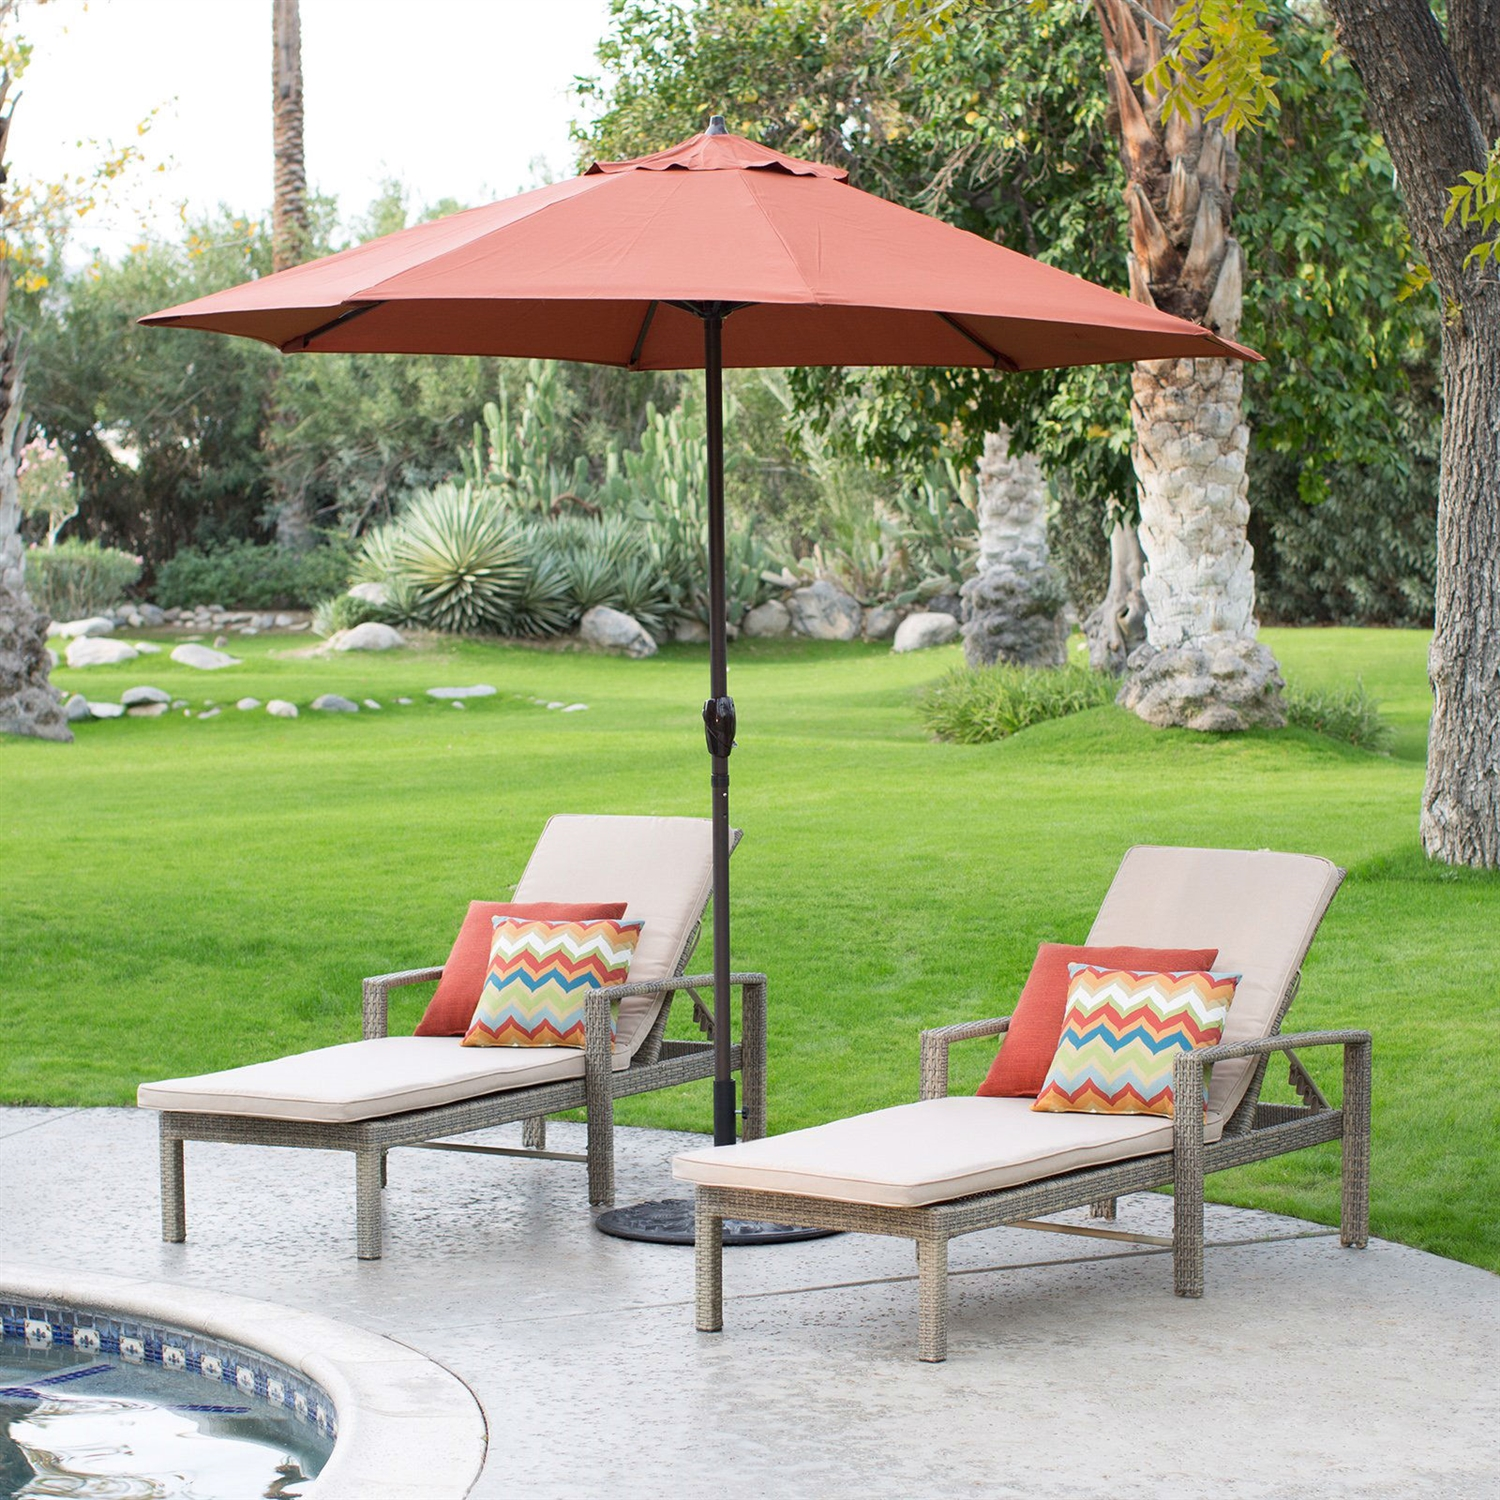 9 Ft Patio Umbrella In Terracotta With Metal Pole And Tilt Mechanism